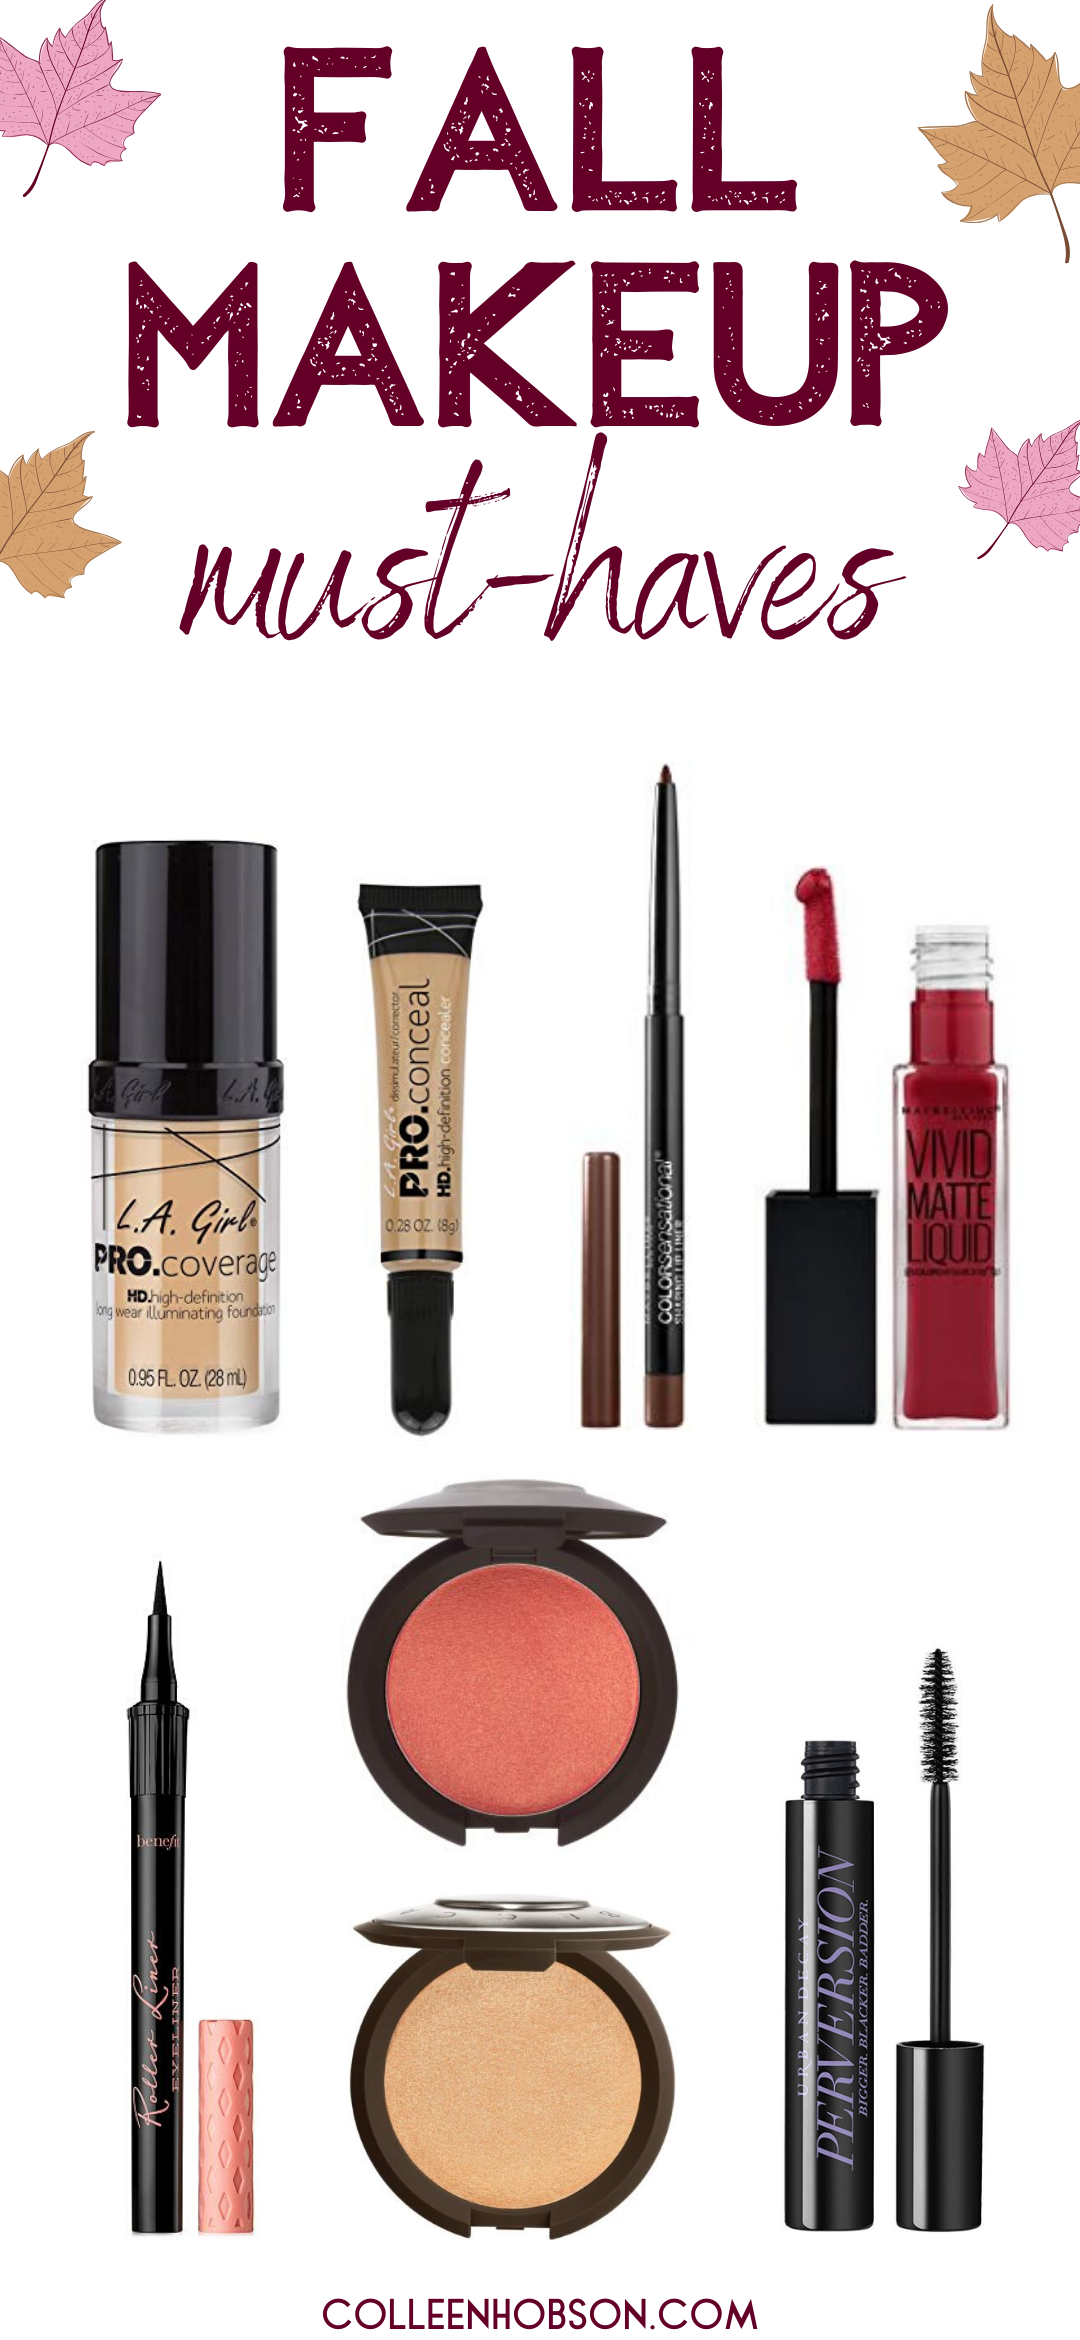 5 Fall Makeup Trends + Must Haves To Try This Season in